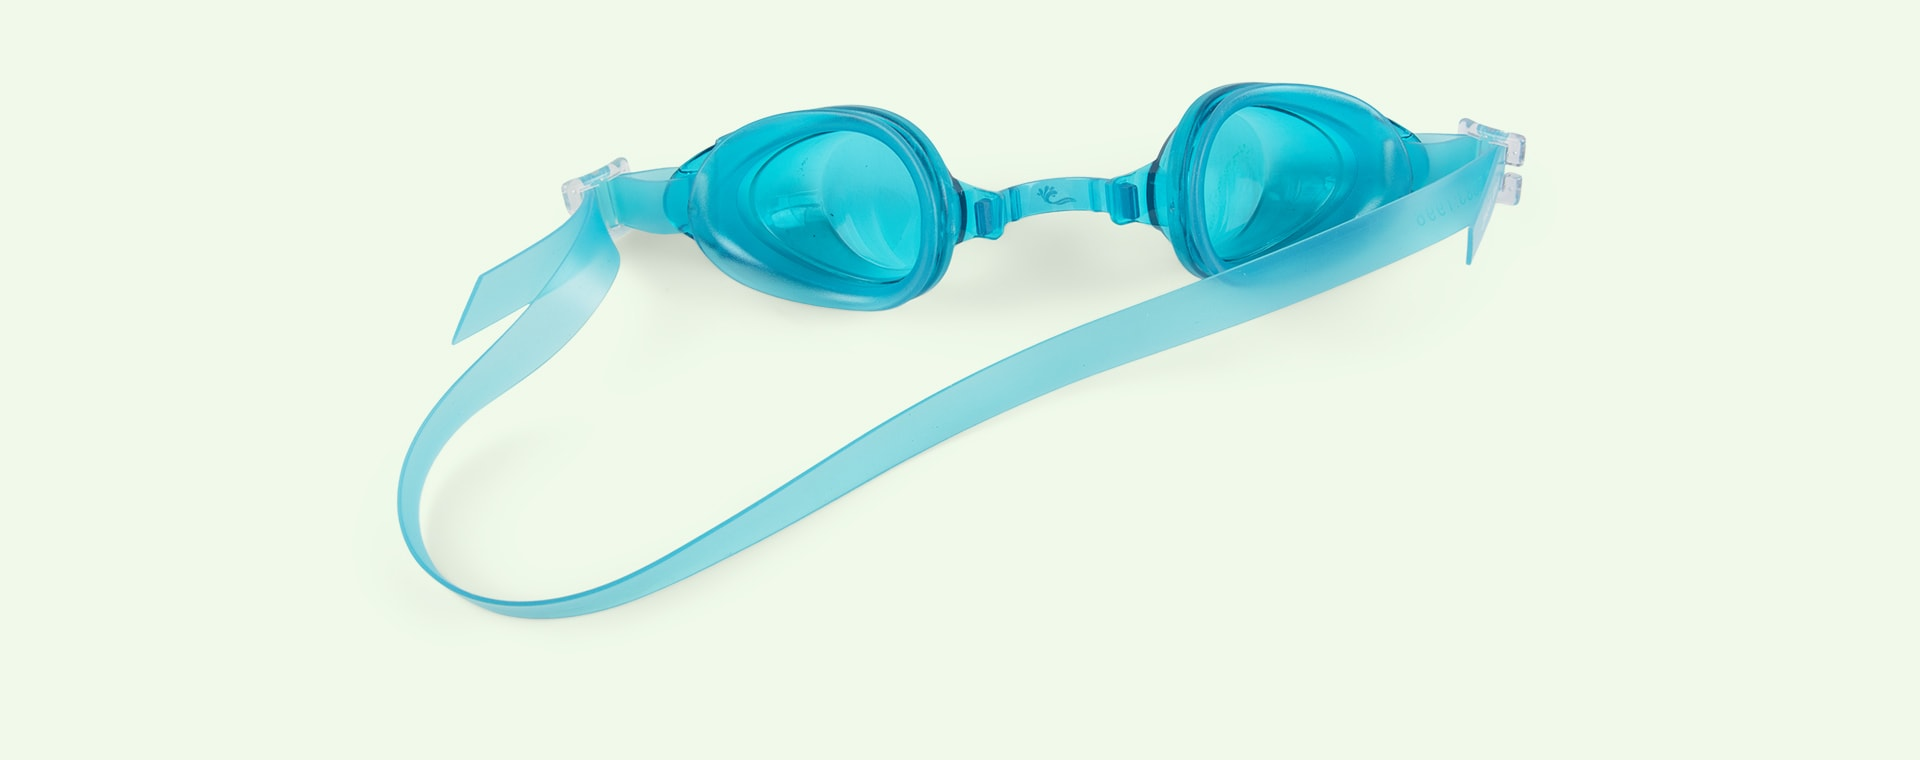 Aqua Splash About Infant Minnow Goggles